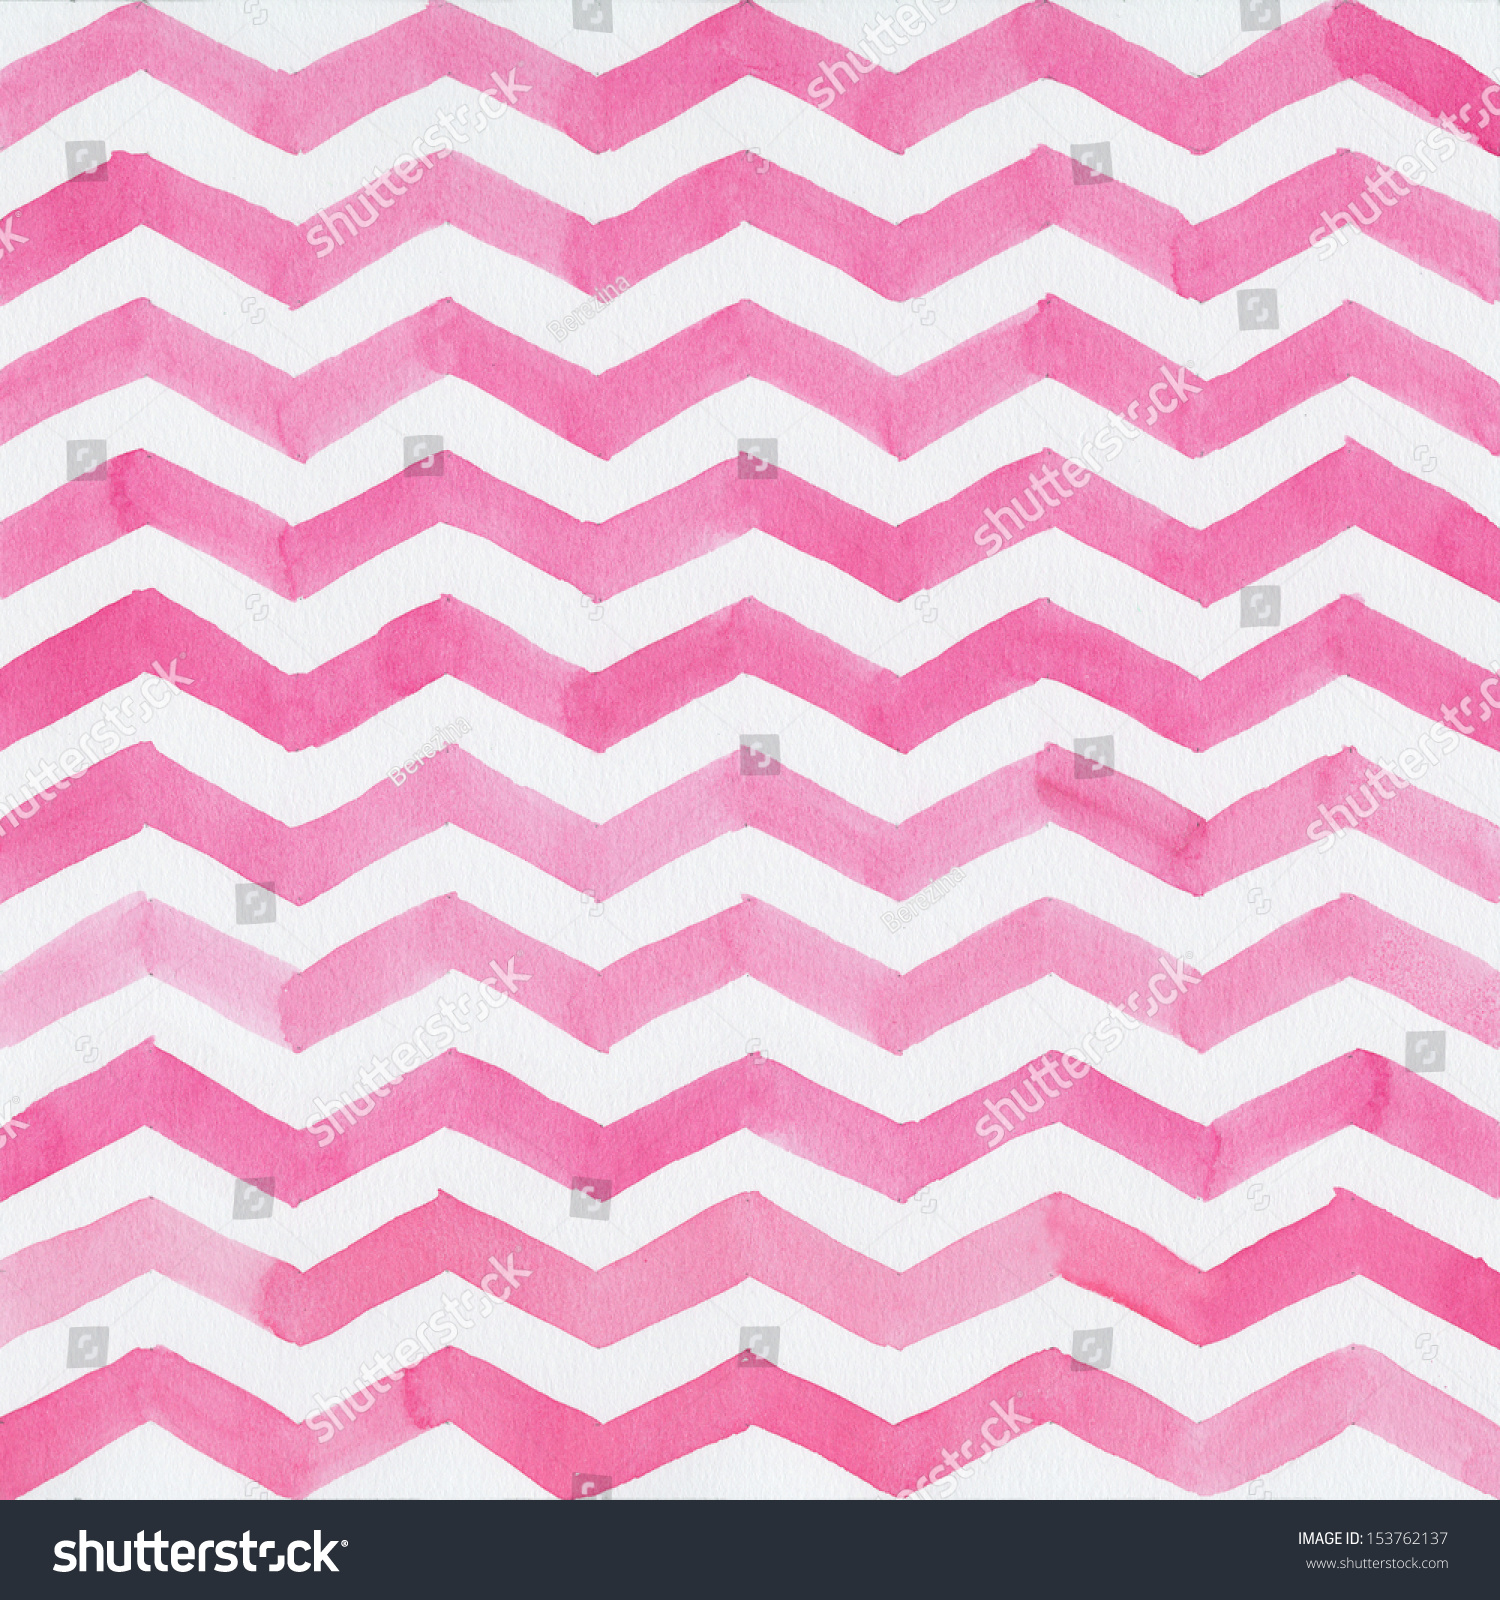 Blue pink and white background design with chevron stripe